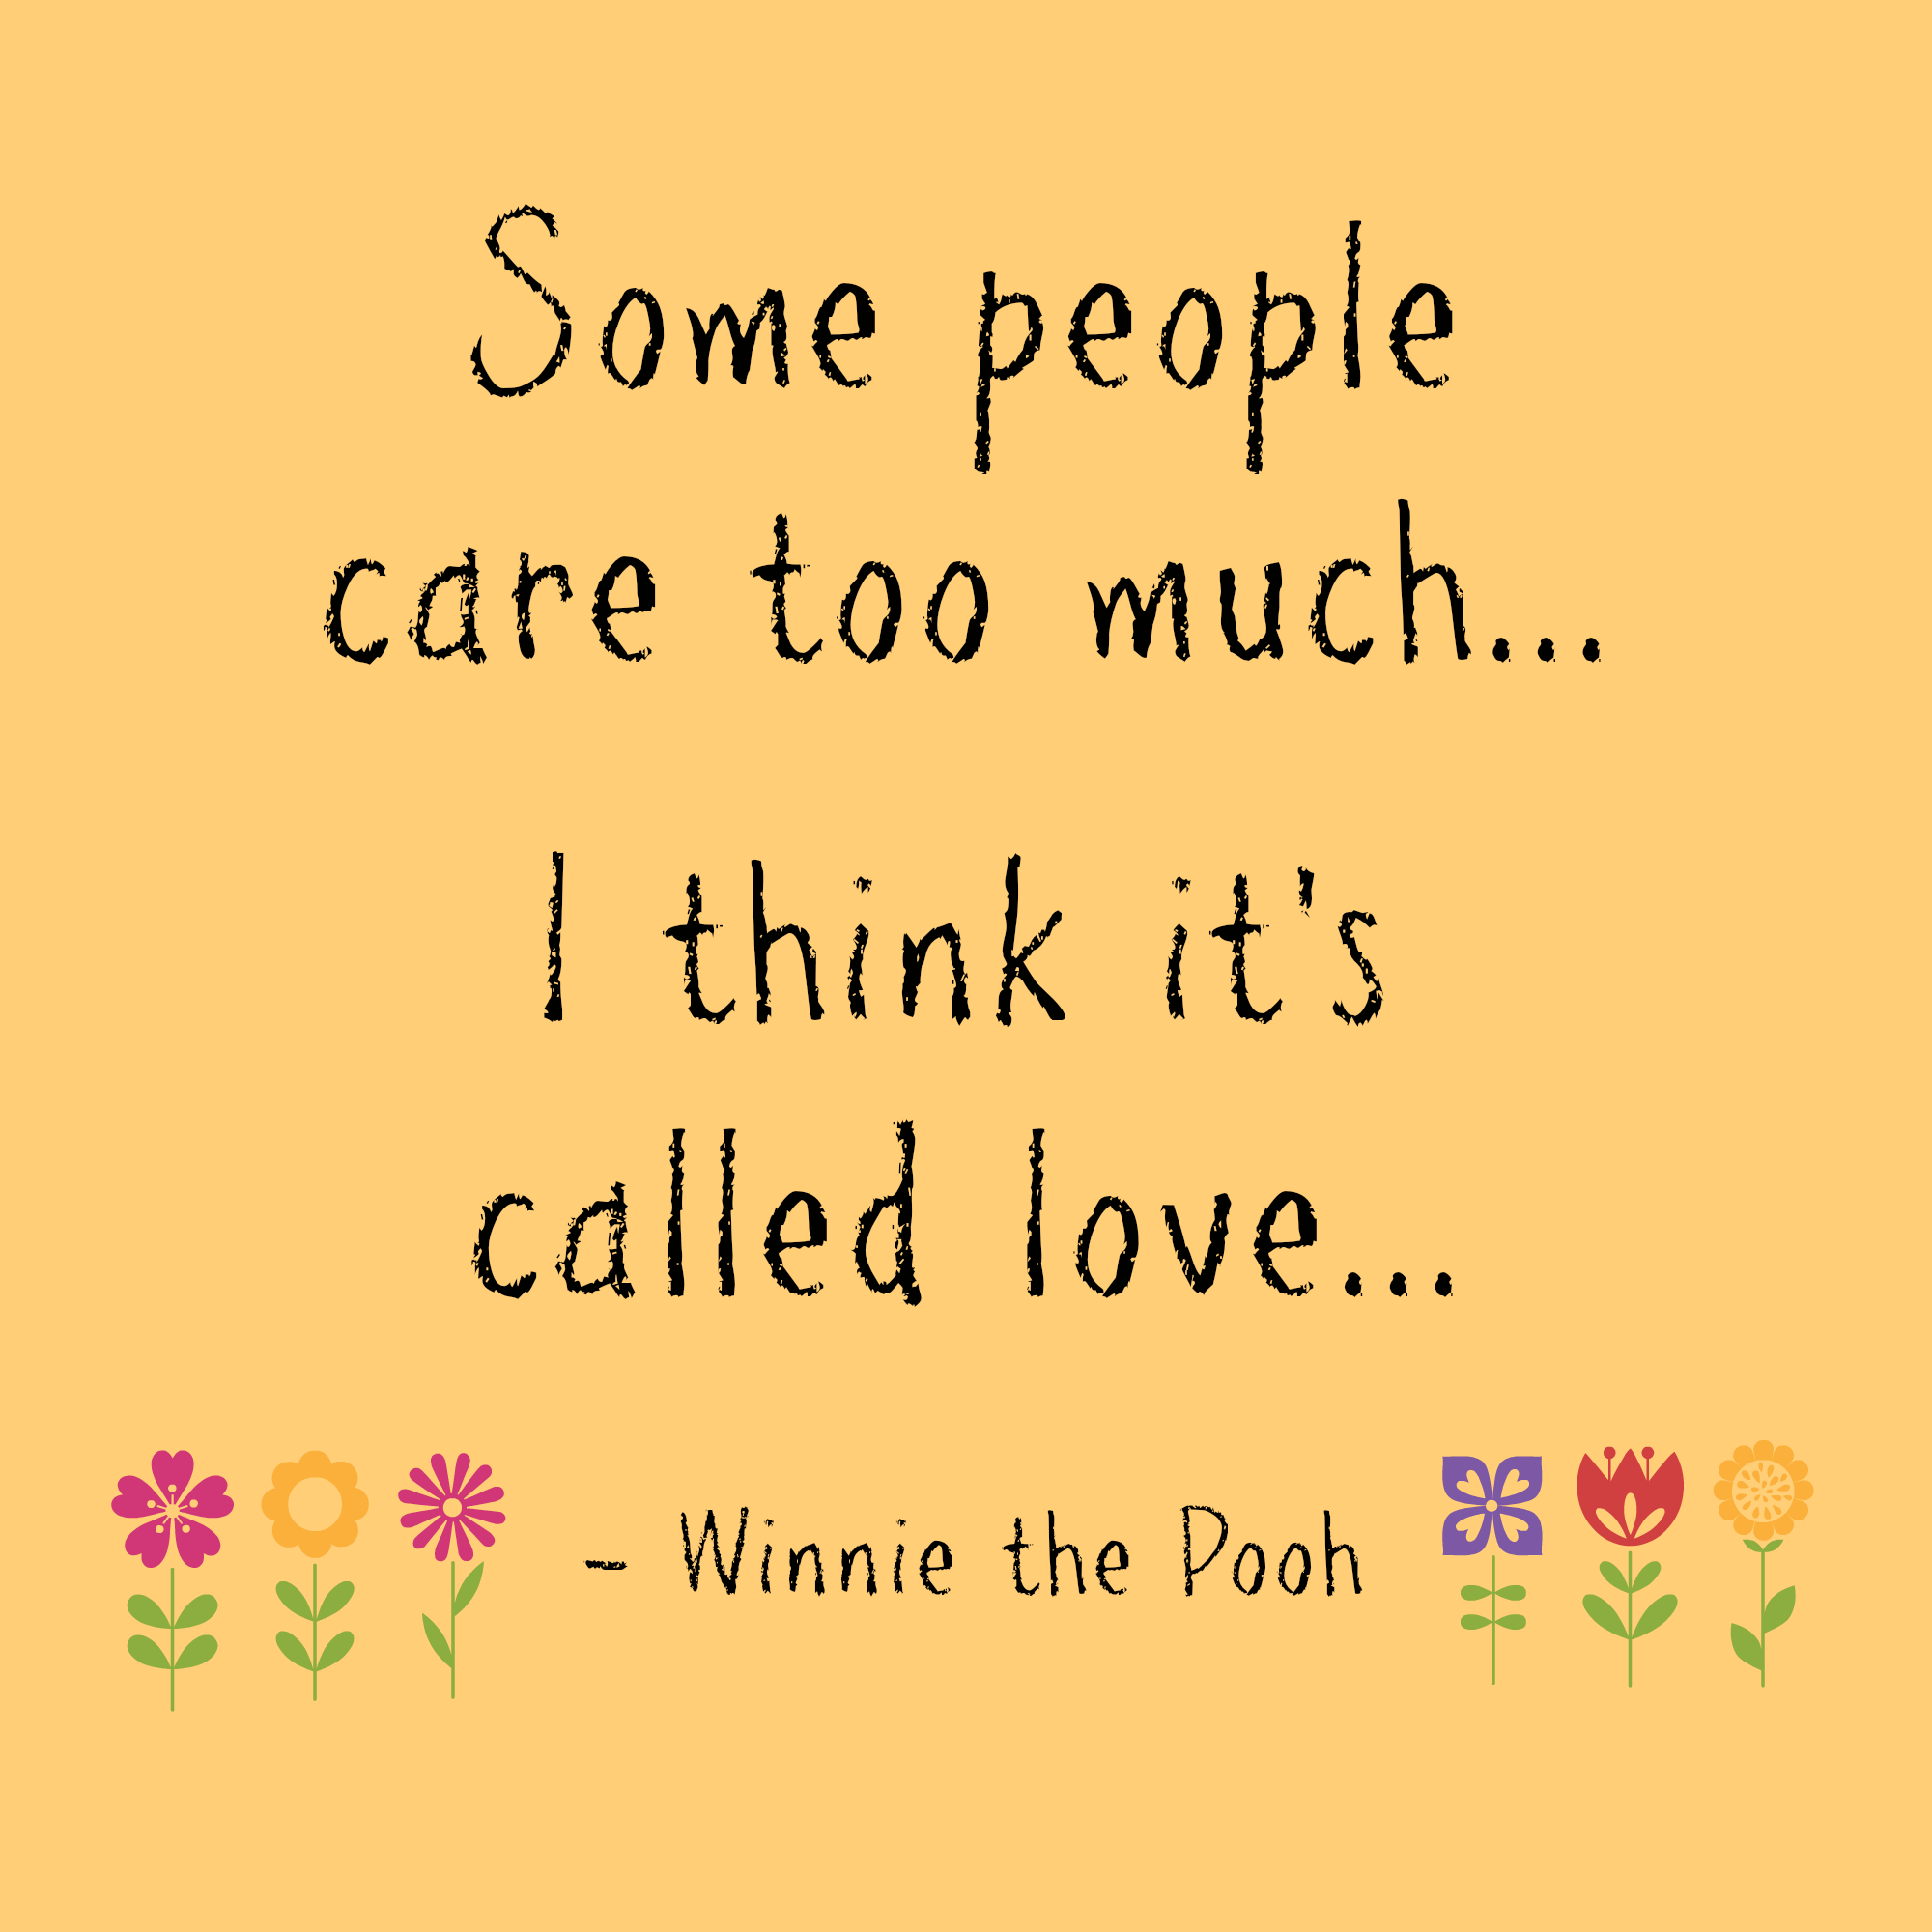 Pooh Quotes About Friendship Winnie The Pooh Friendship Quotes For Tumblr  Upload Mega Quotes